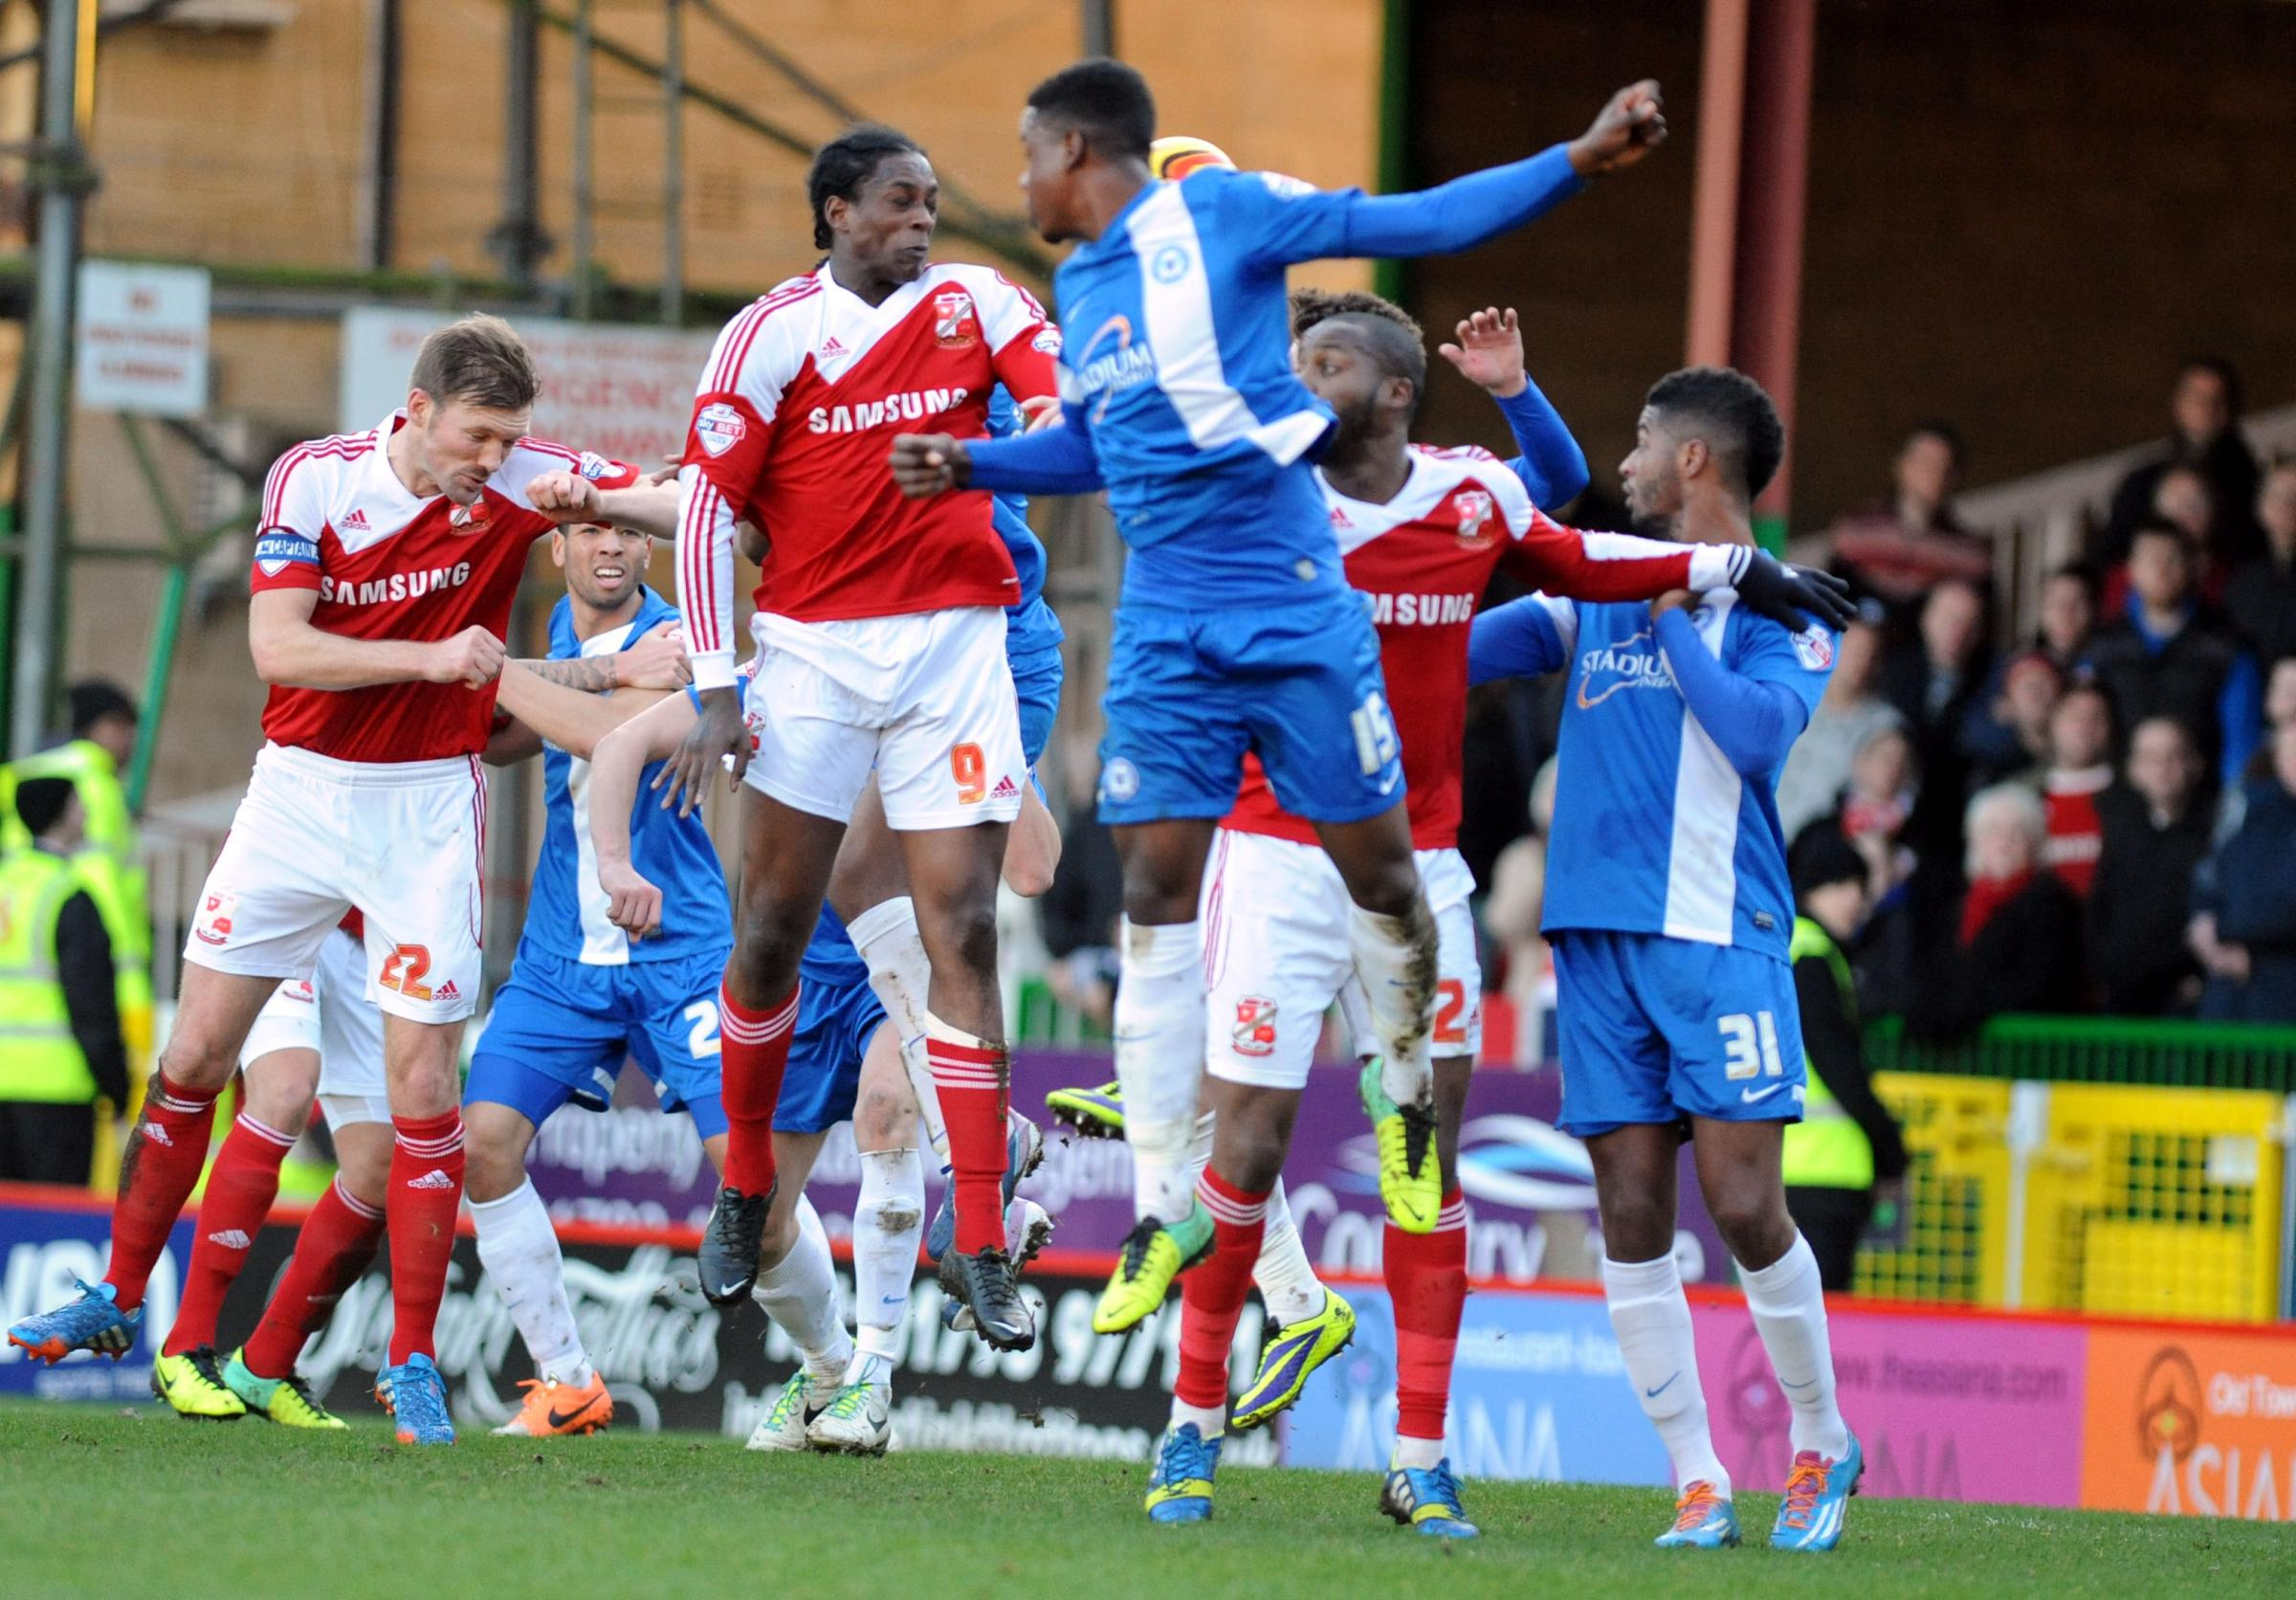 SWINDON TOWN 2 PETERBOROUGH UTD 1: Swindon's Balotelli does it again